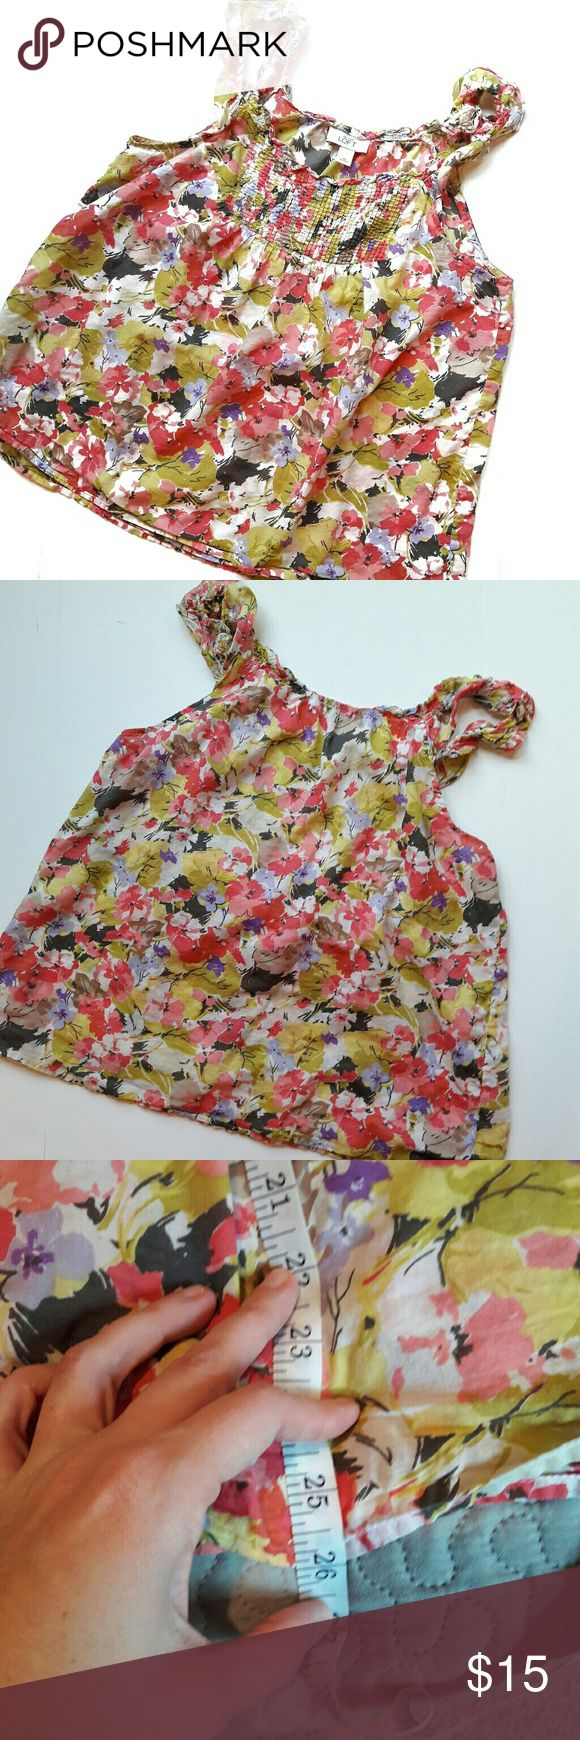 loft ⏺  floral top In great condition! Purple, red, black, white and brown in color. Bust and length Measurements provided in pics above. 100% cotton. Stretchy. Loose fitting. Fits more like a large than a medium. Ruffles on the straps. From a smoke and pet free home. Fast shipping! Office - Vacation - Wedding - Fun - Dress up - date night - cruise - spring - summer *IF YOU LIKE MY ITEMS, please FOLLOW ME to see NEW ARRIVALS that are added weekly! * LOFT Tops